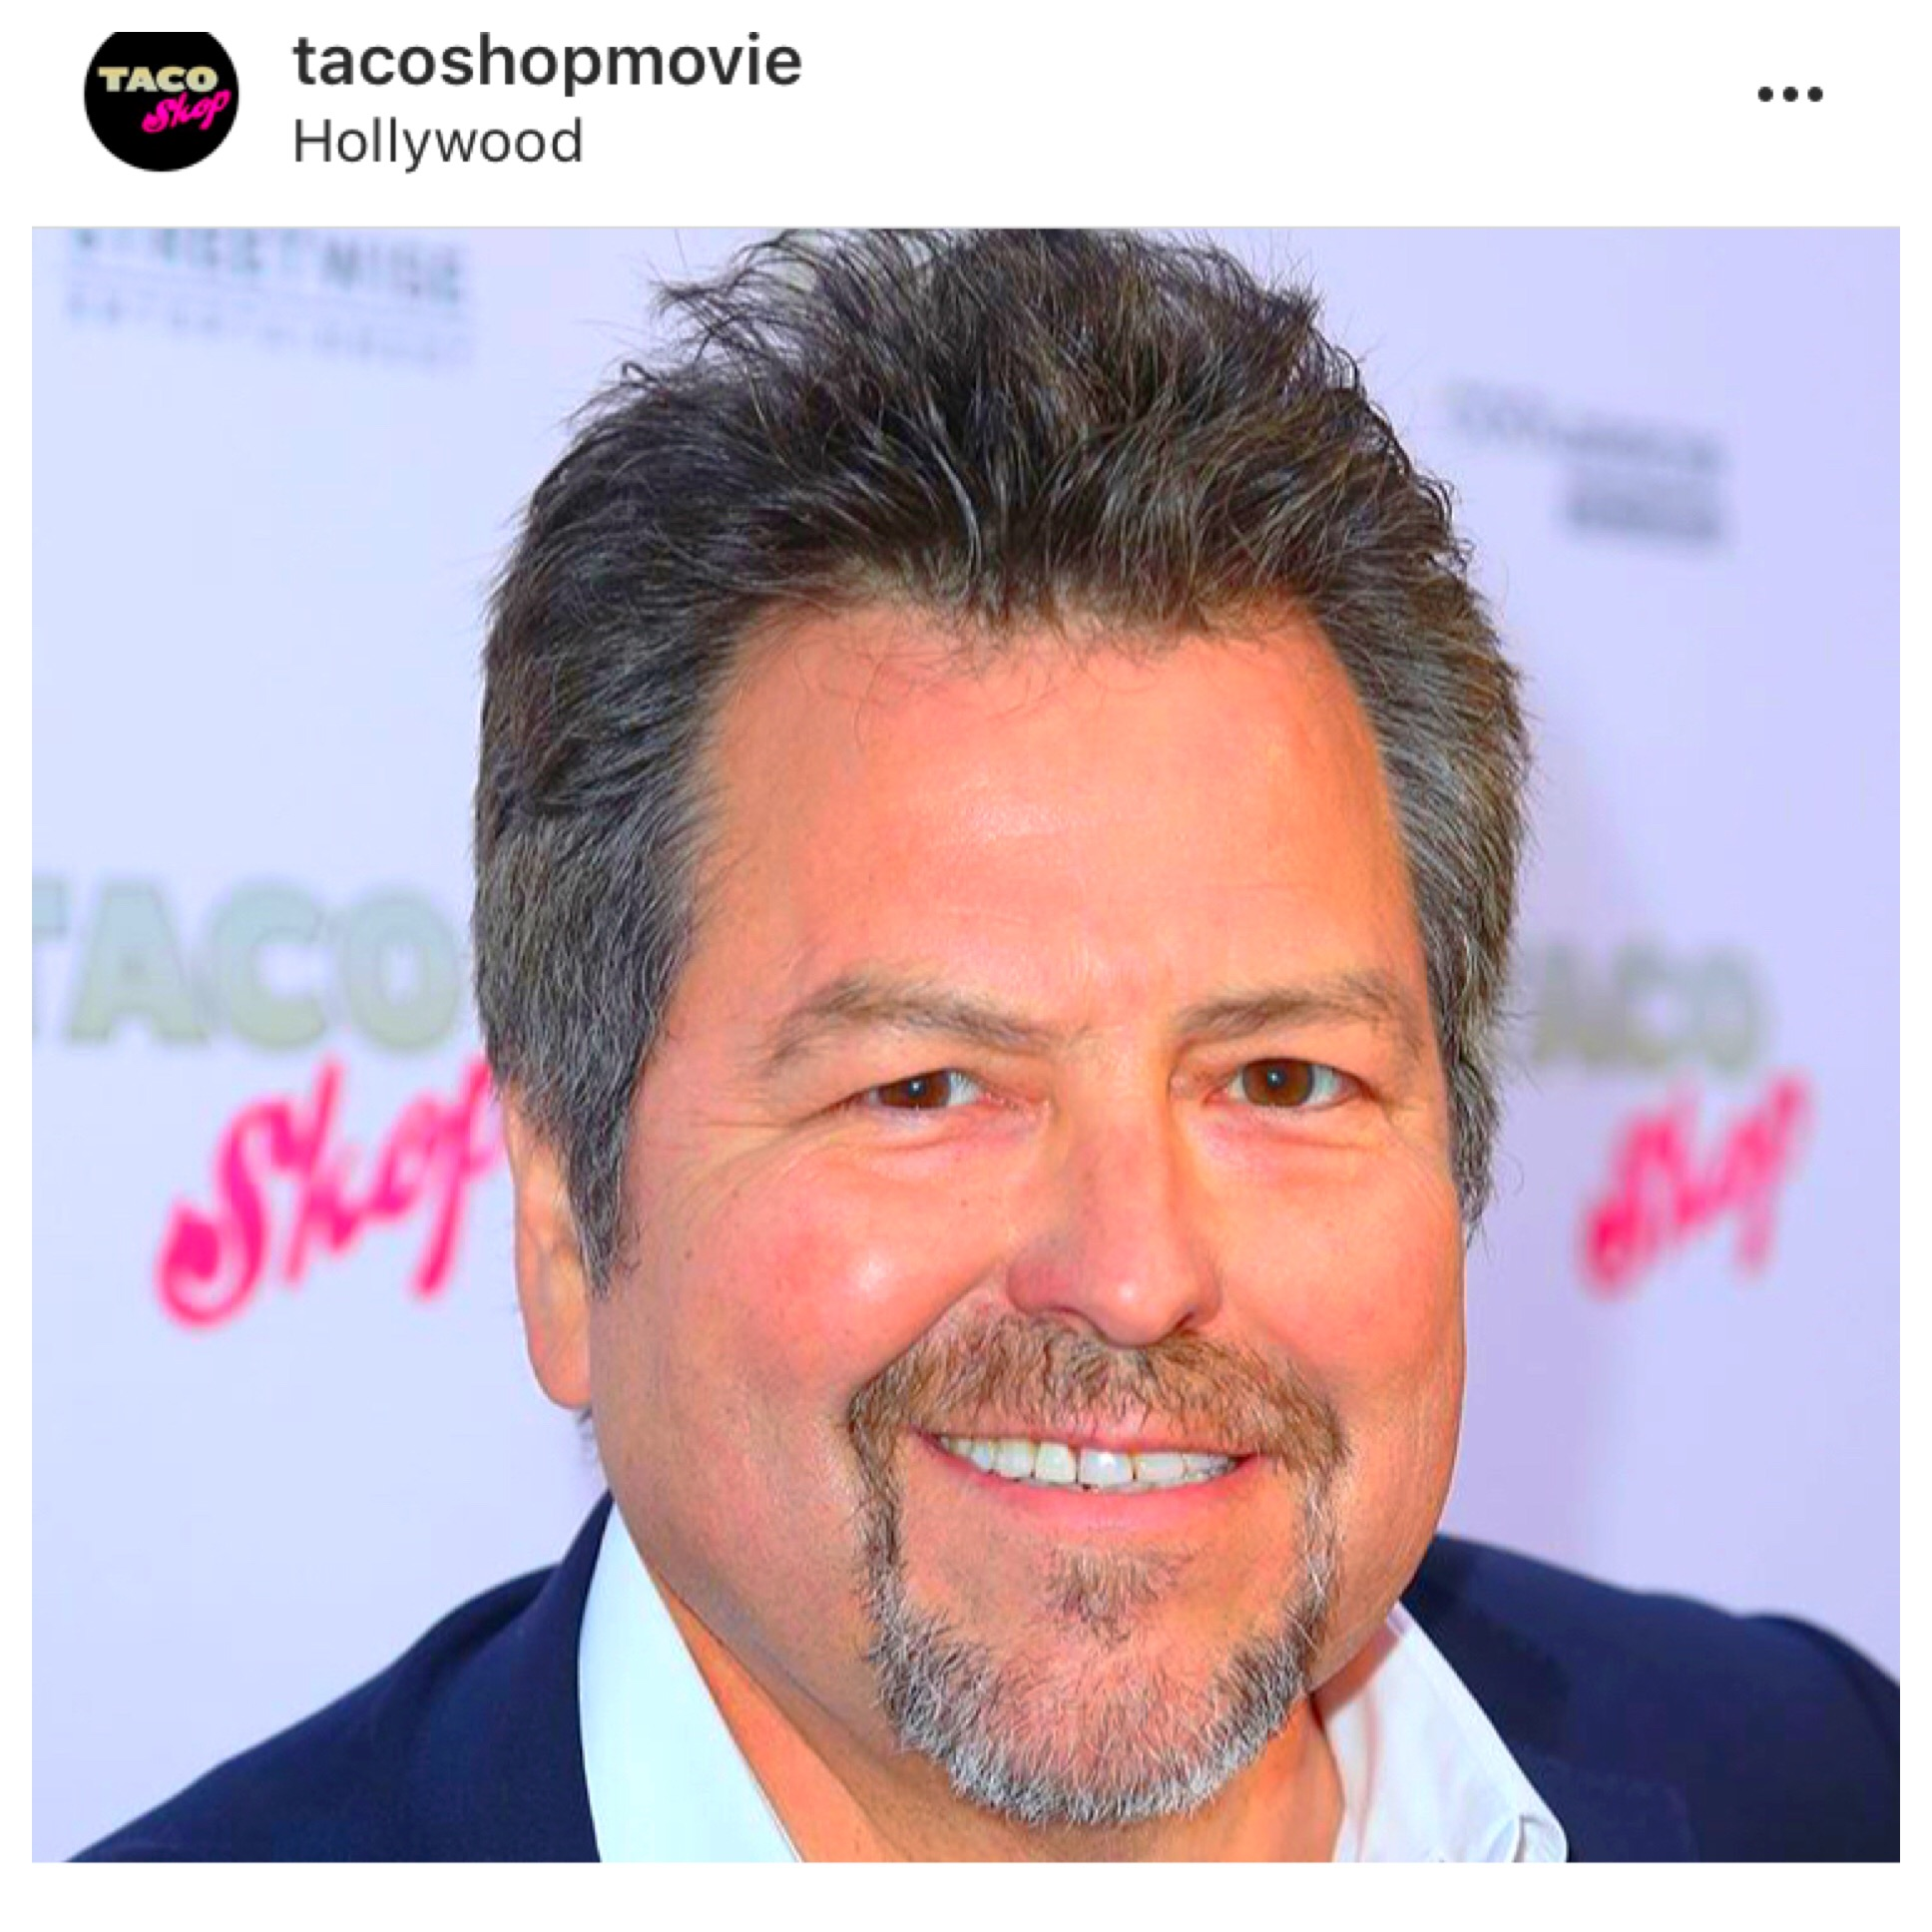 Rick Najera at Taco Shop movie premiere